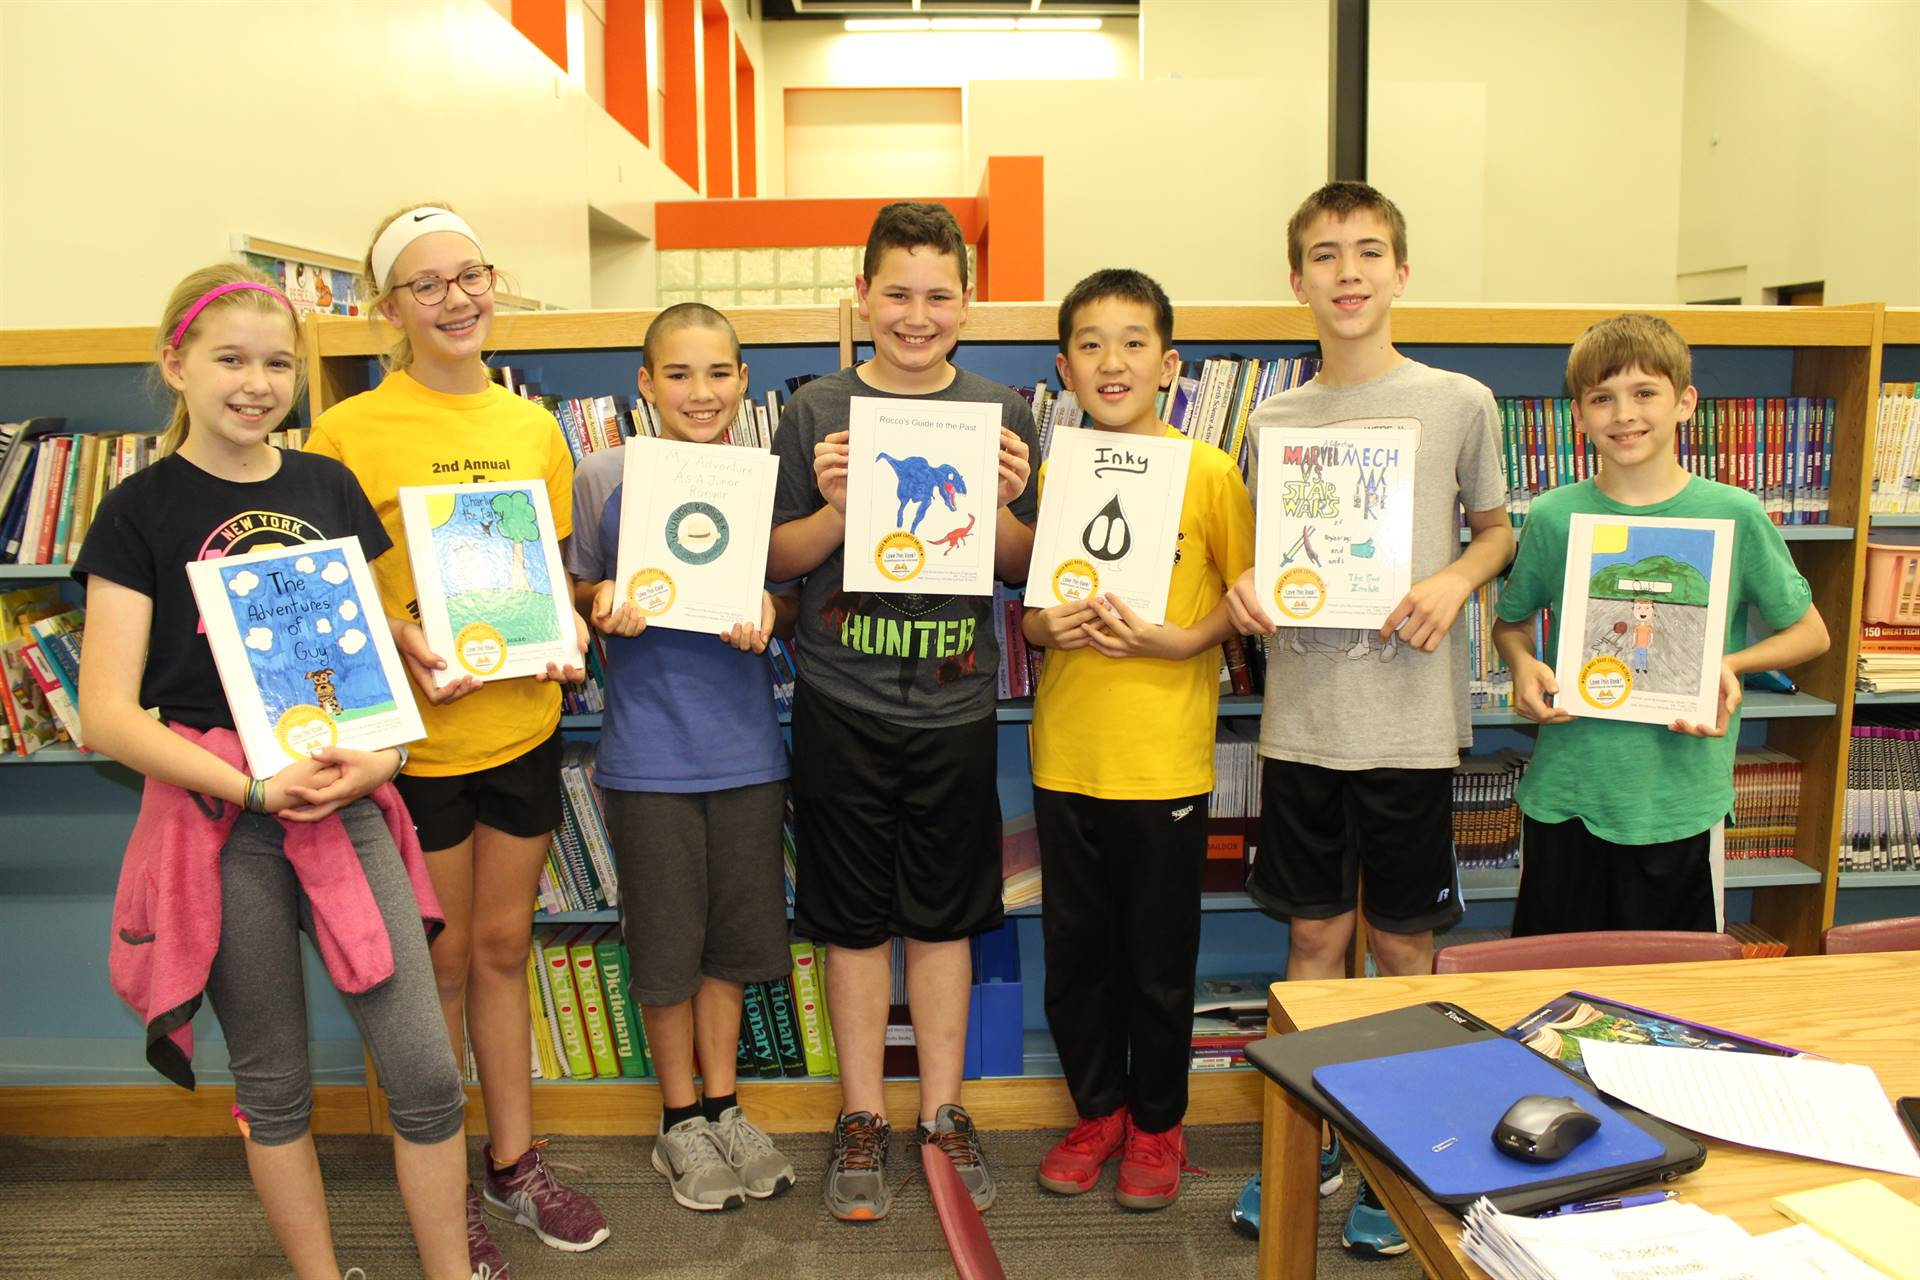 Seven GATE students with the books they wrote